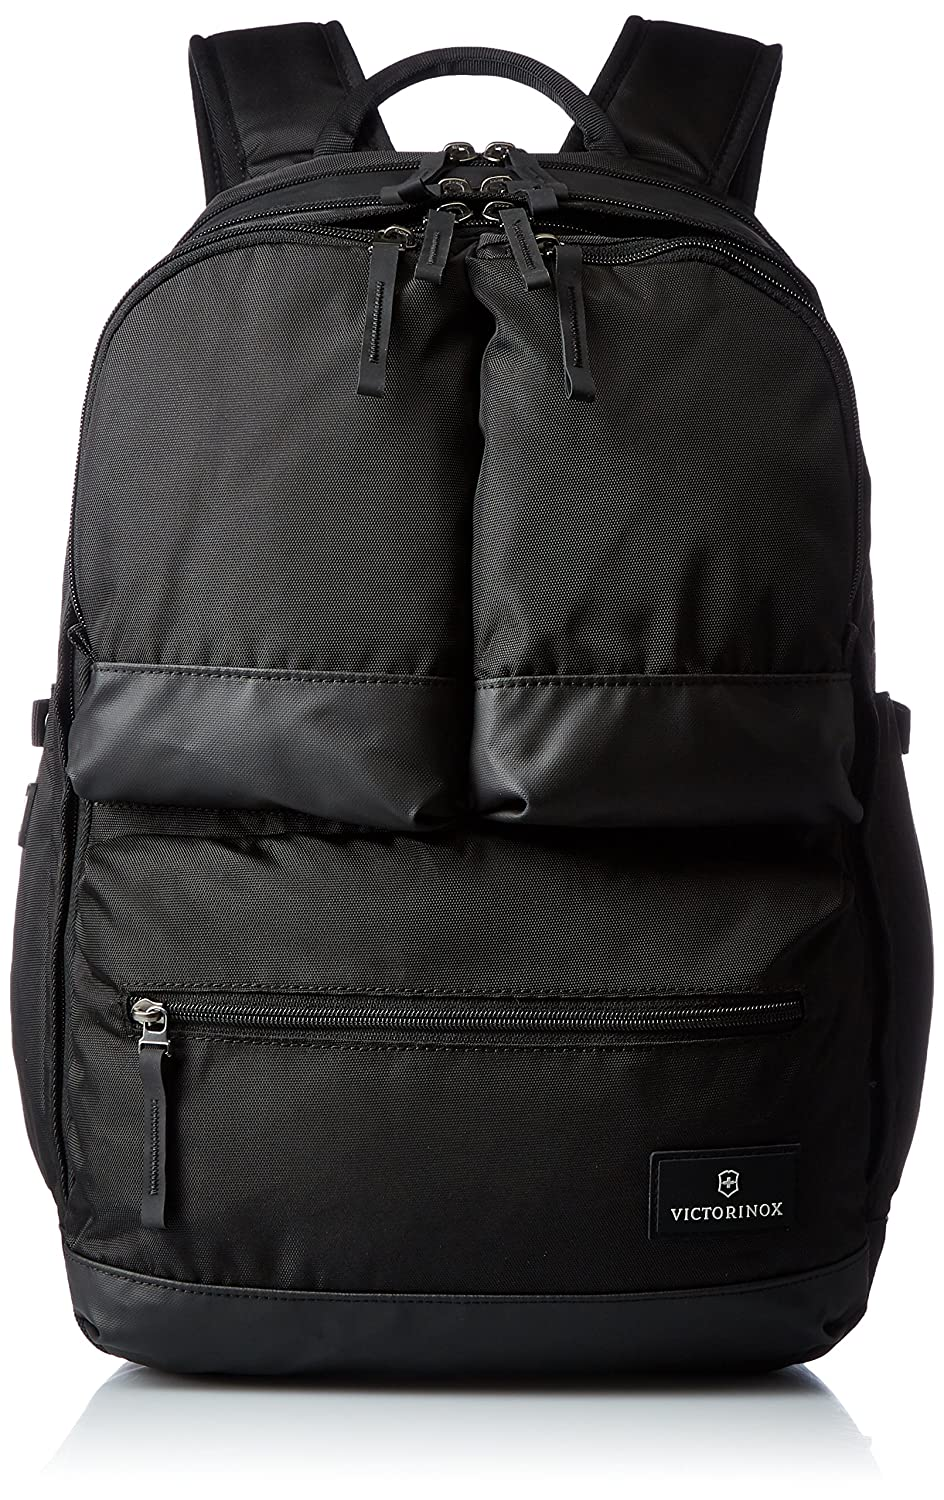 cb969ced8 Amazon.com  Victorinox Luggage Altmont 3.0 Dual-Compartment Laptop  Backpack